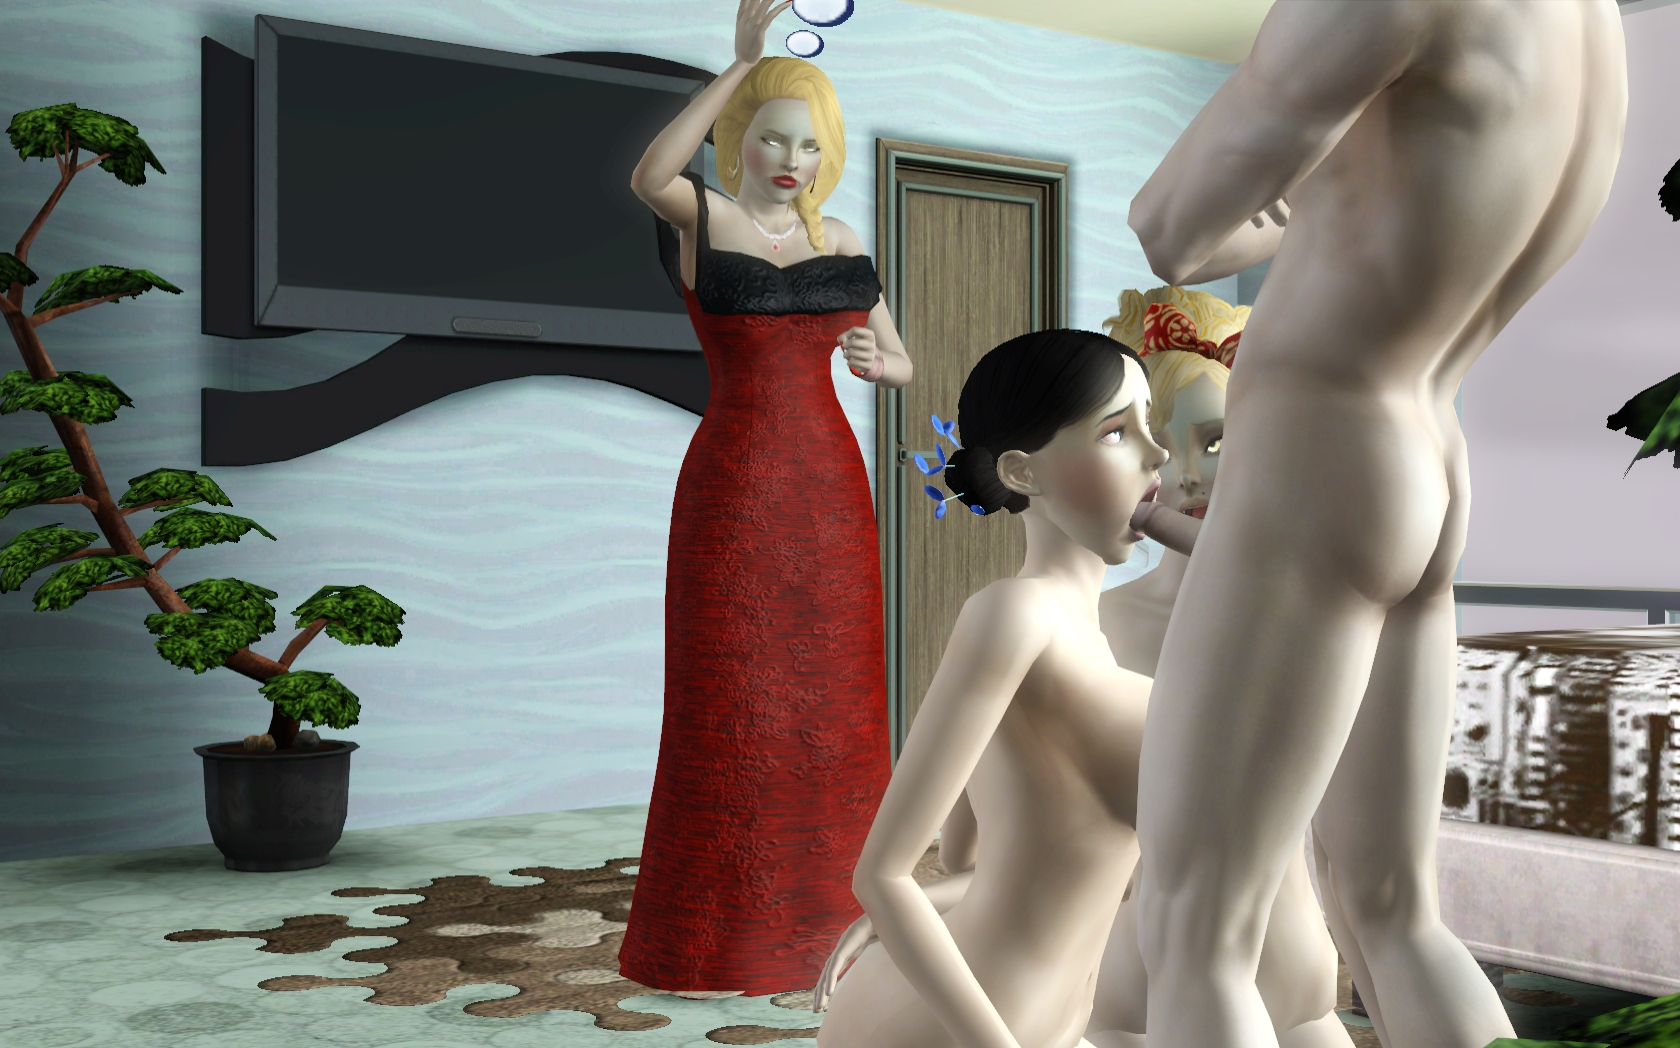 The sims 3 sex cartoon pics